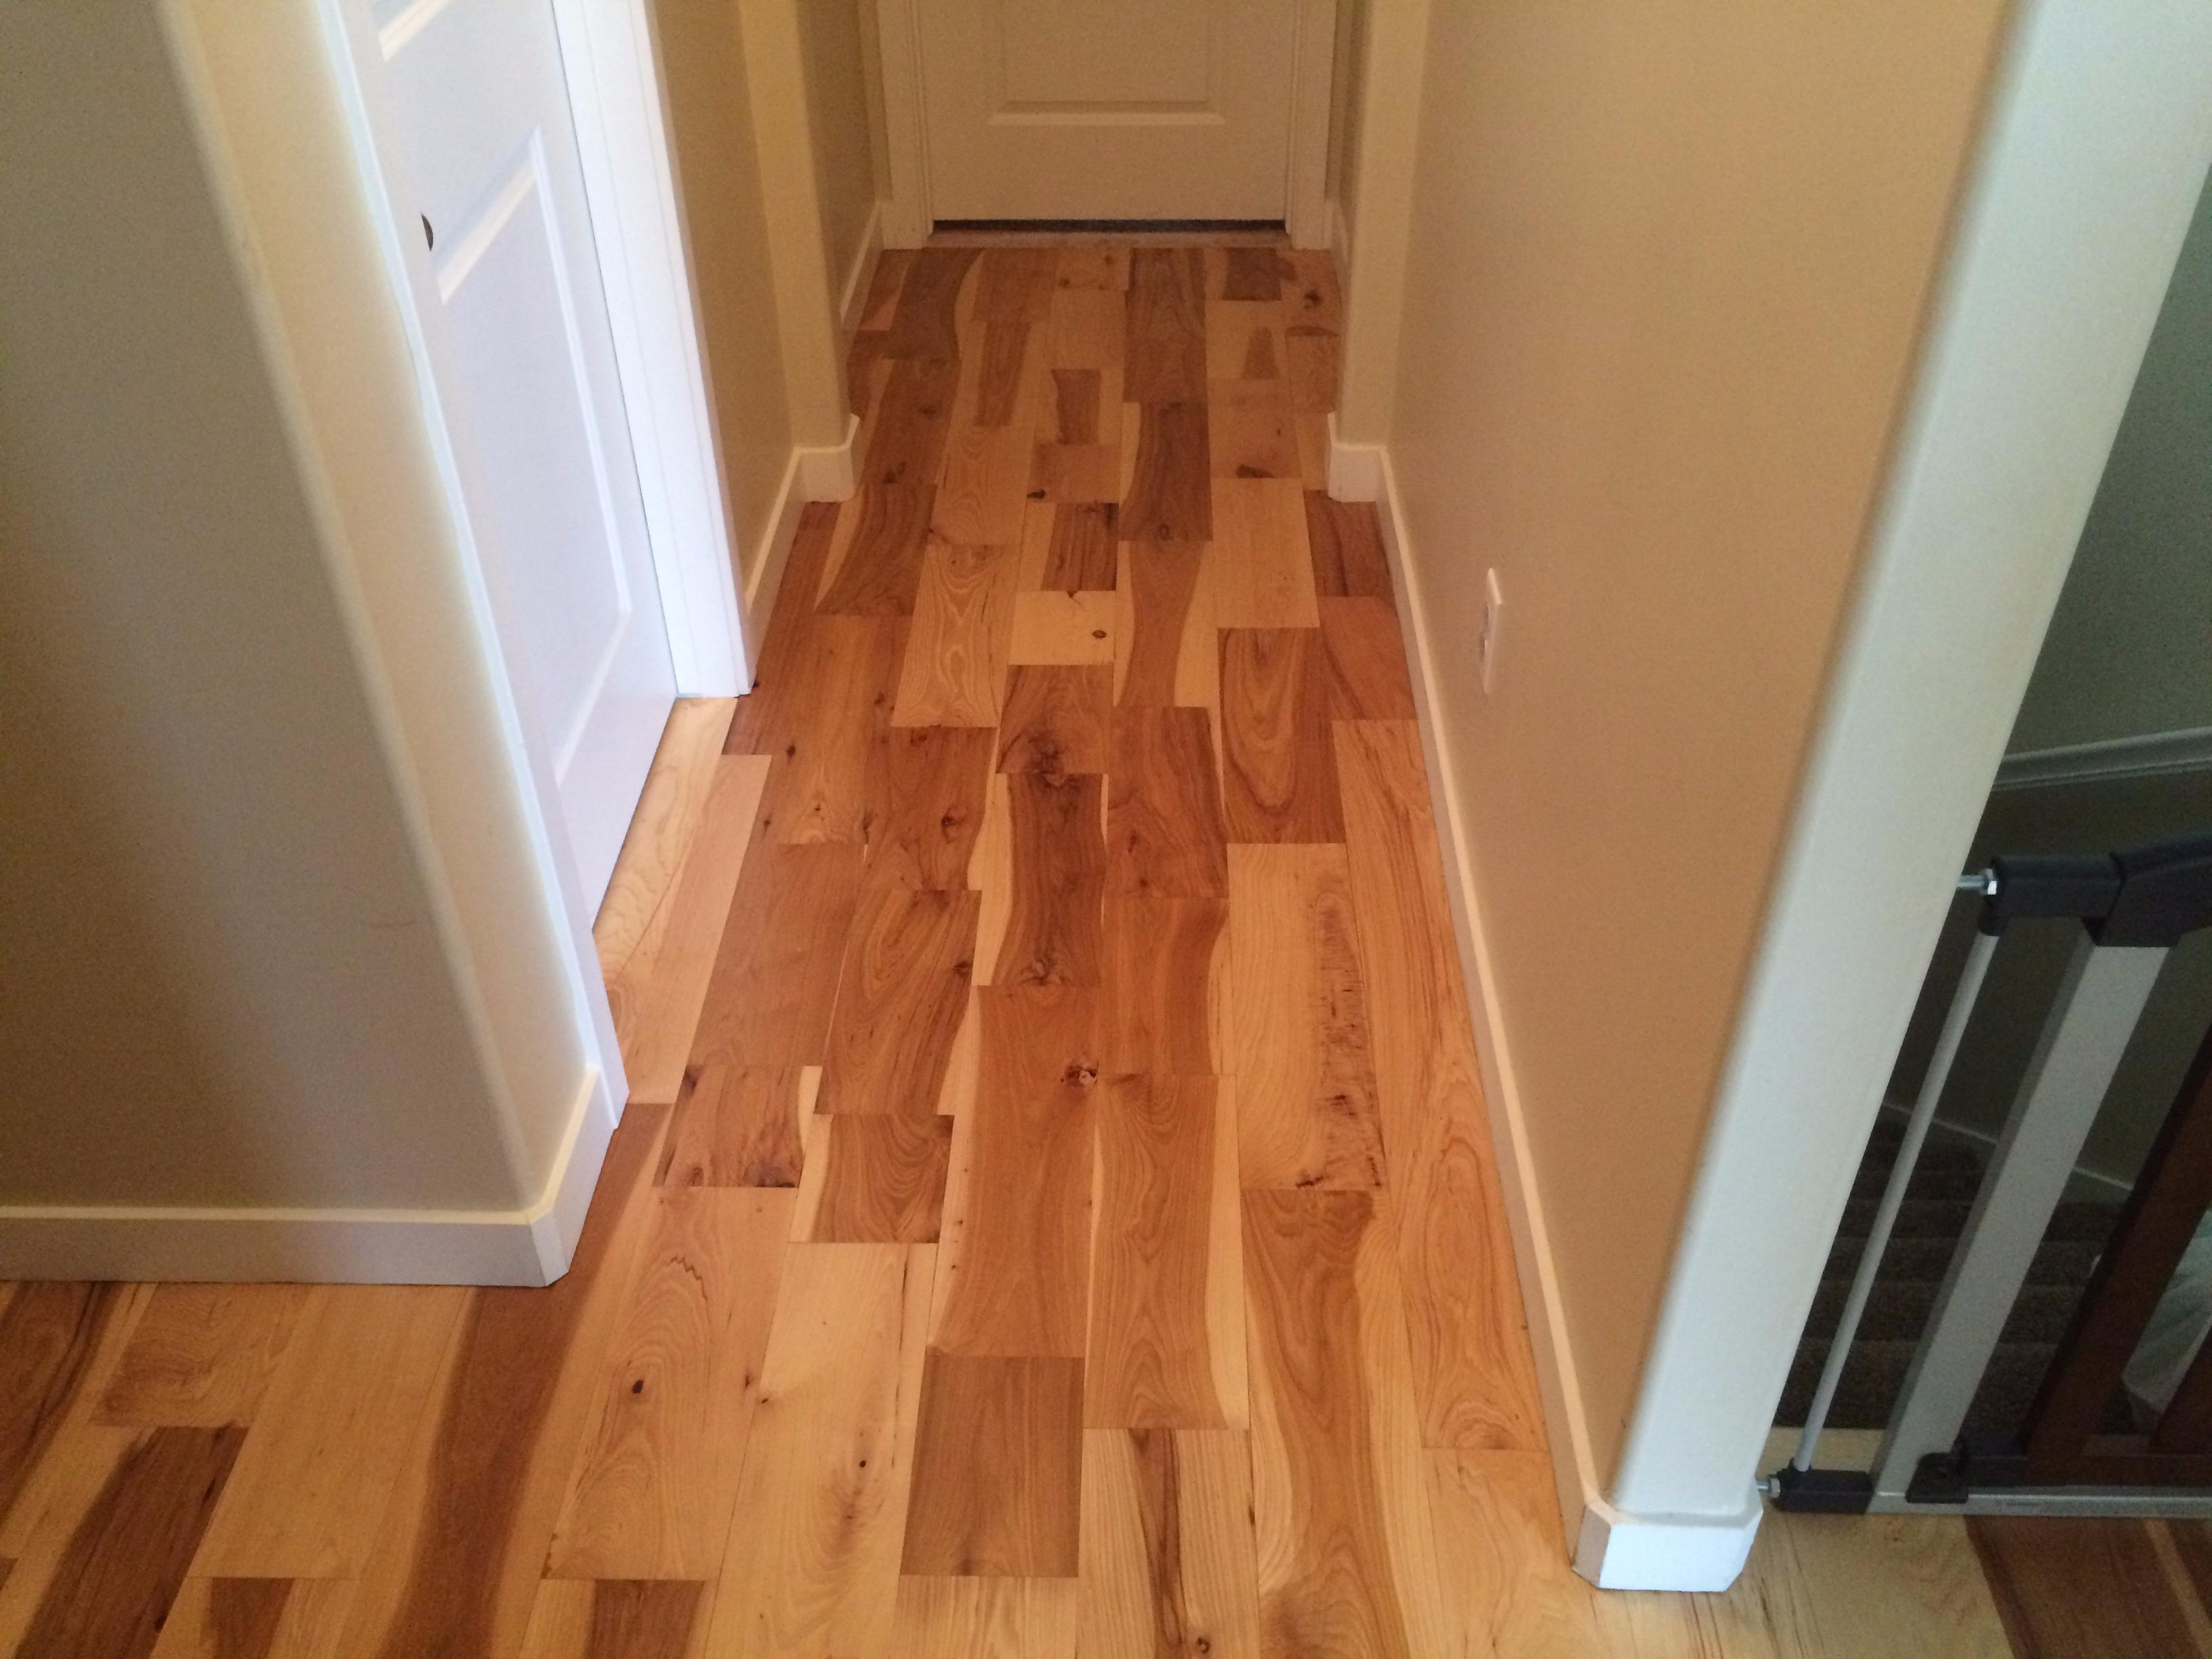 Lambert hardwood flooring ogden utah ut for Hardwood flooring nearby